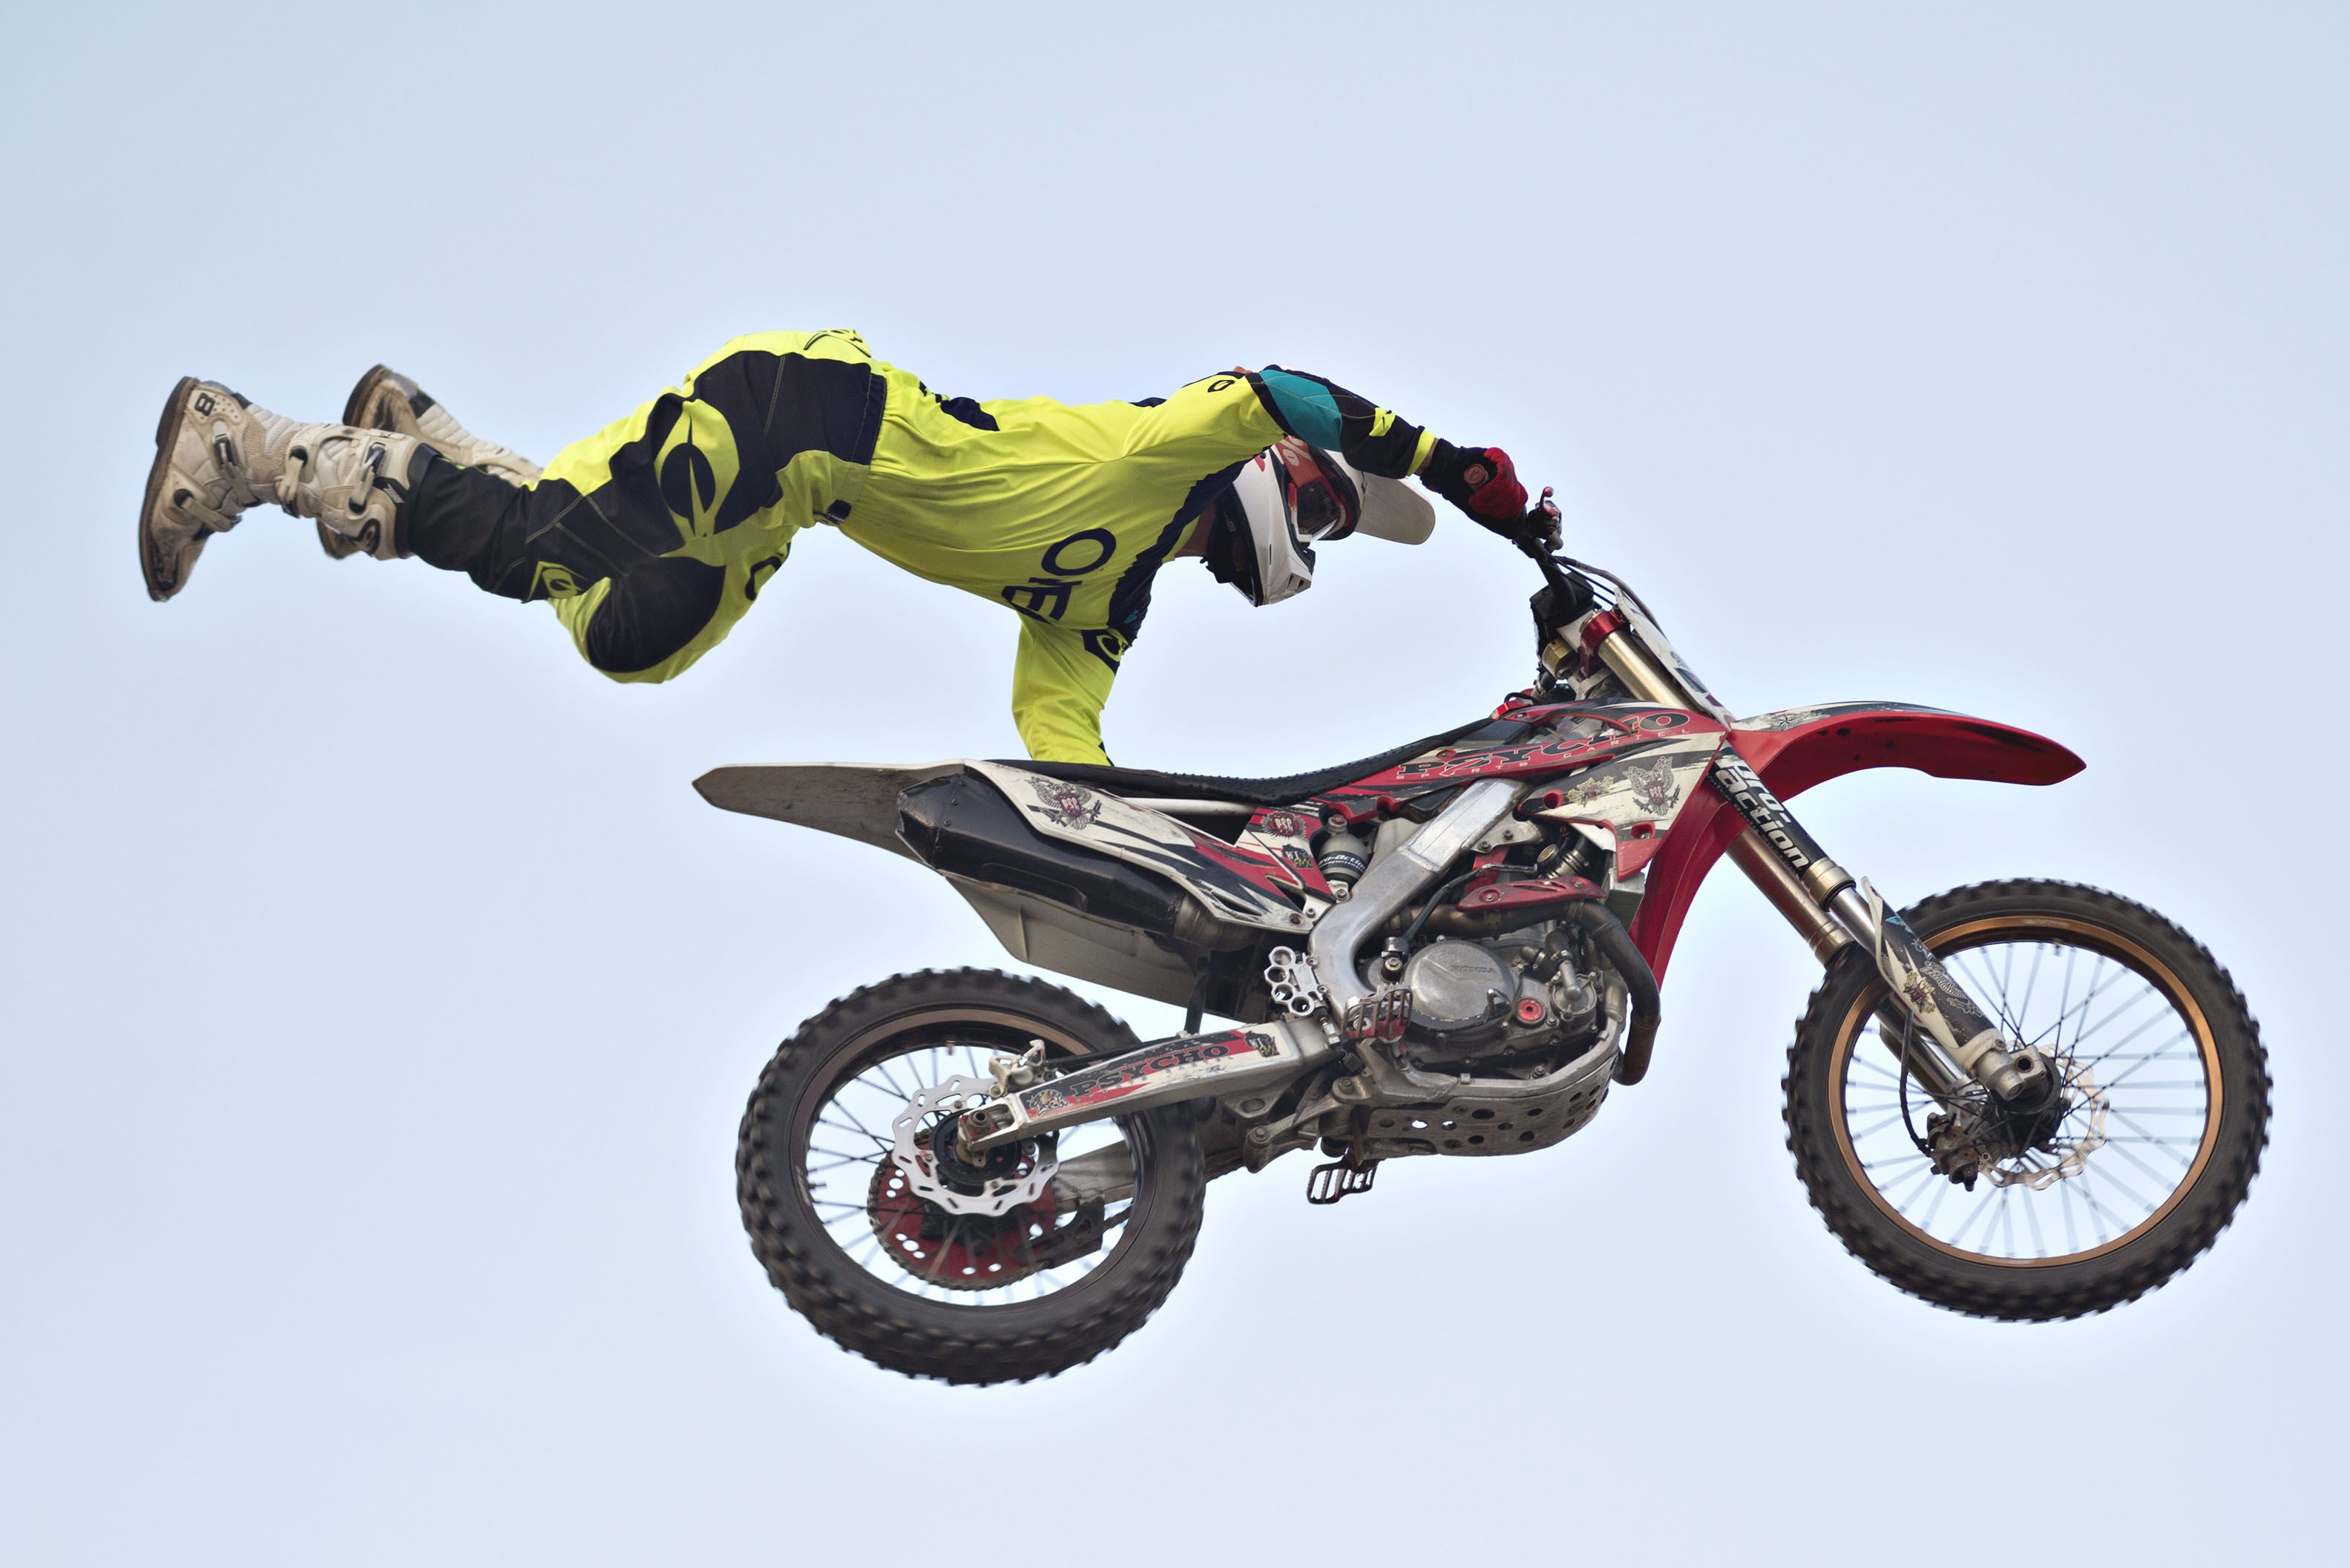 Cody Cavanaugh gets big air Thursday night in Morrison. The Sick Air FMX gang showcased five riders during a variety of flips, stunts and tricks at the Whiteside County Fair.